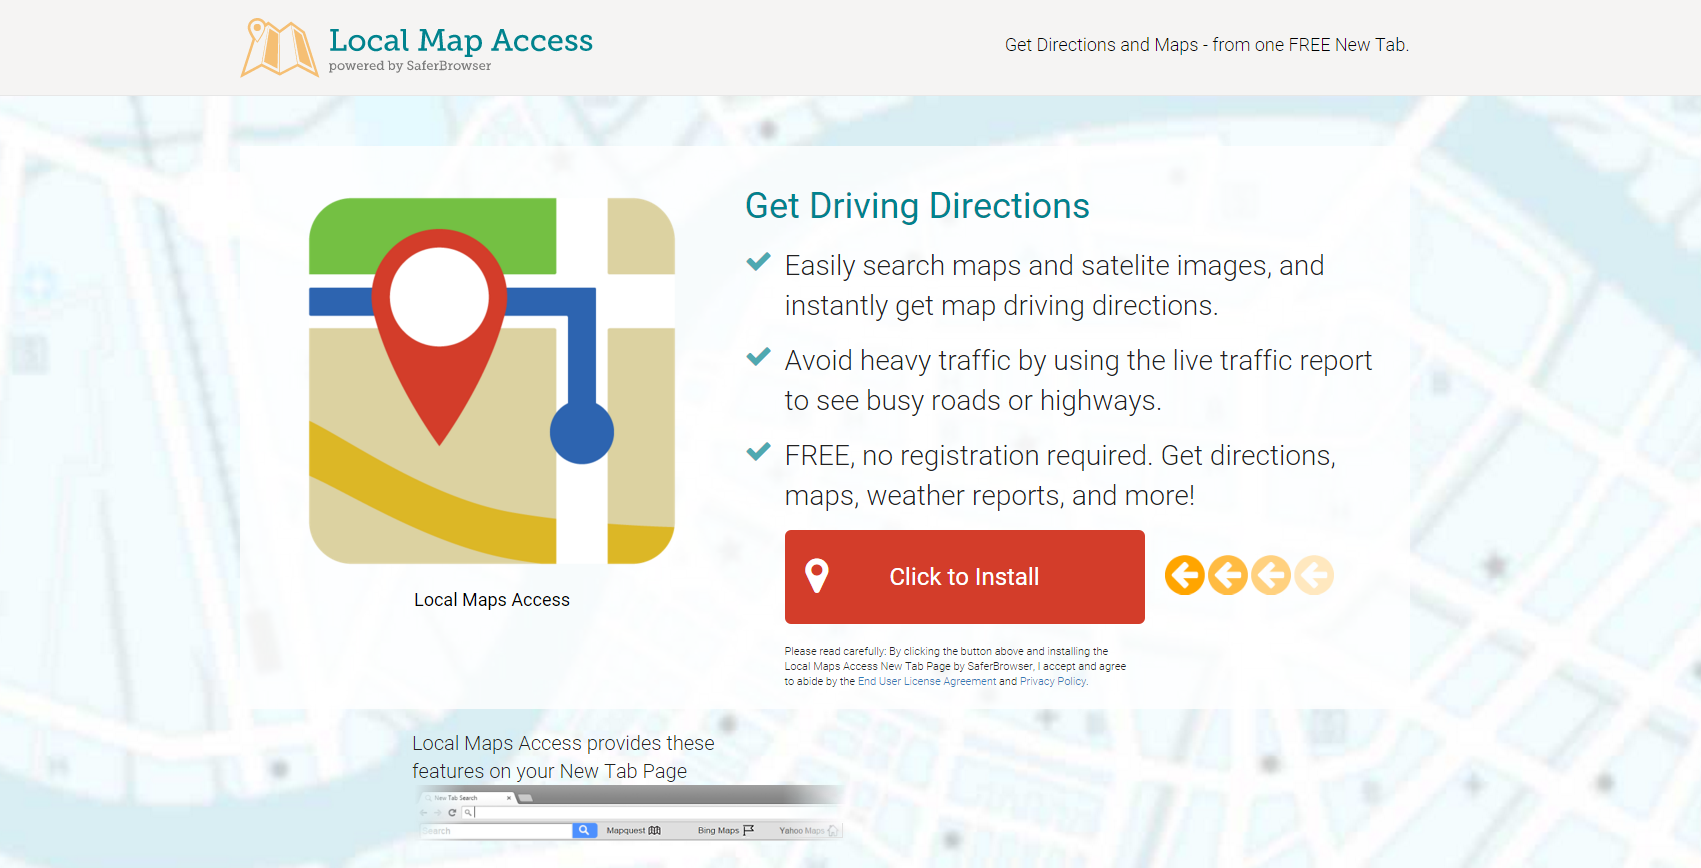 ads by Local Maps Access